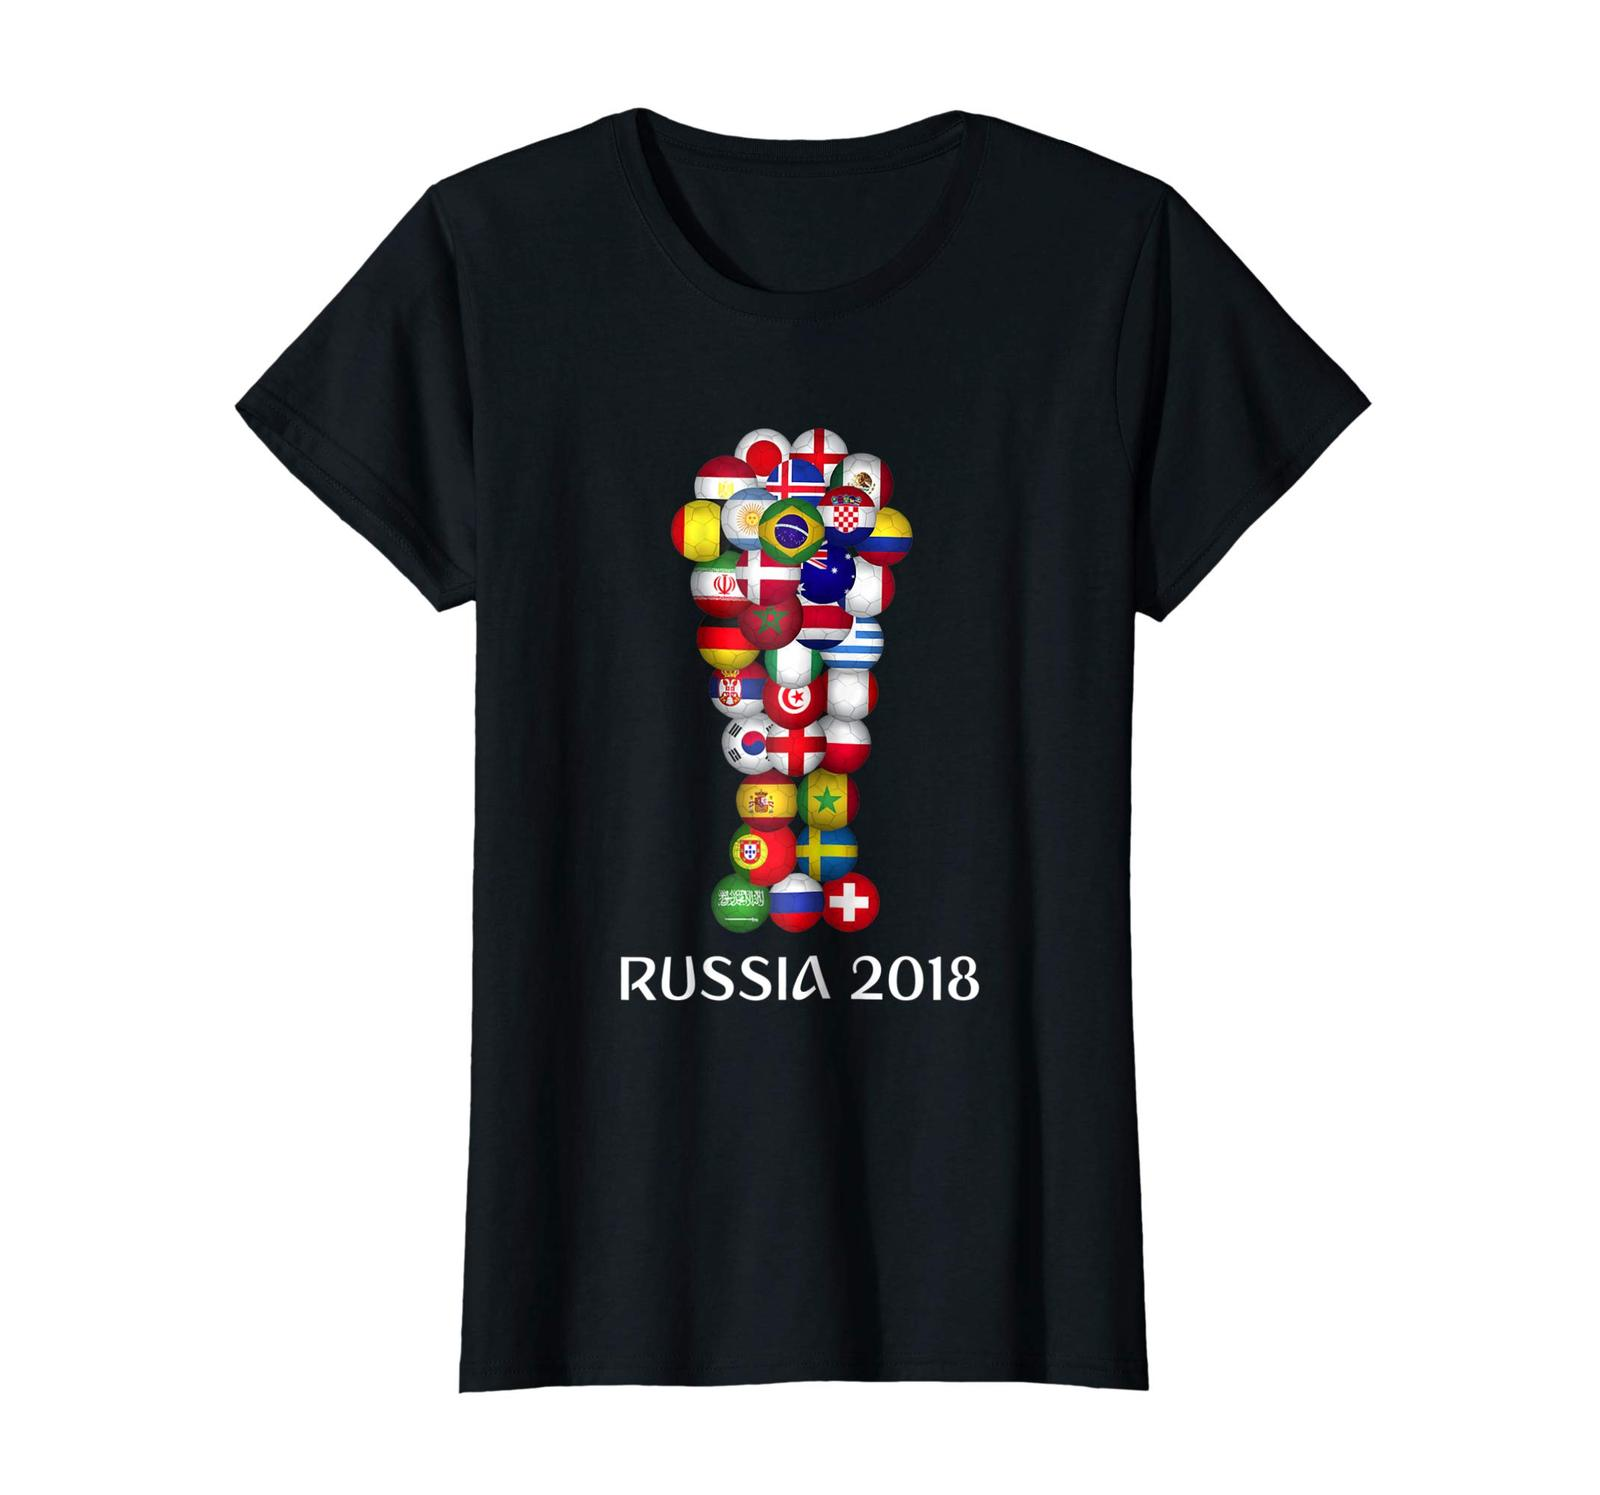 Dad Shirts - Russia World Football 2018 All 32 Teams Soccer Gift Tshirt Wowen